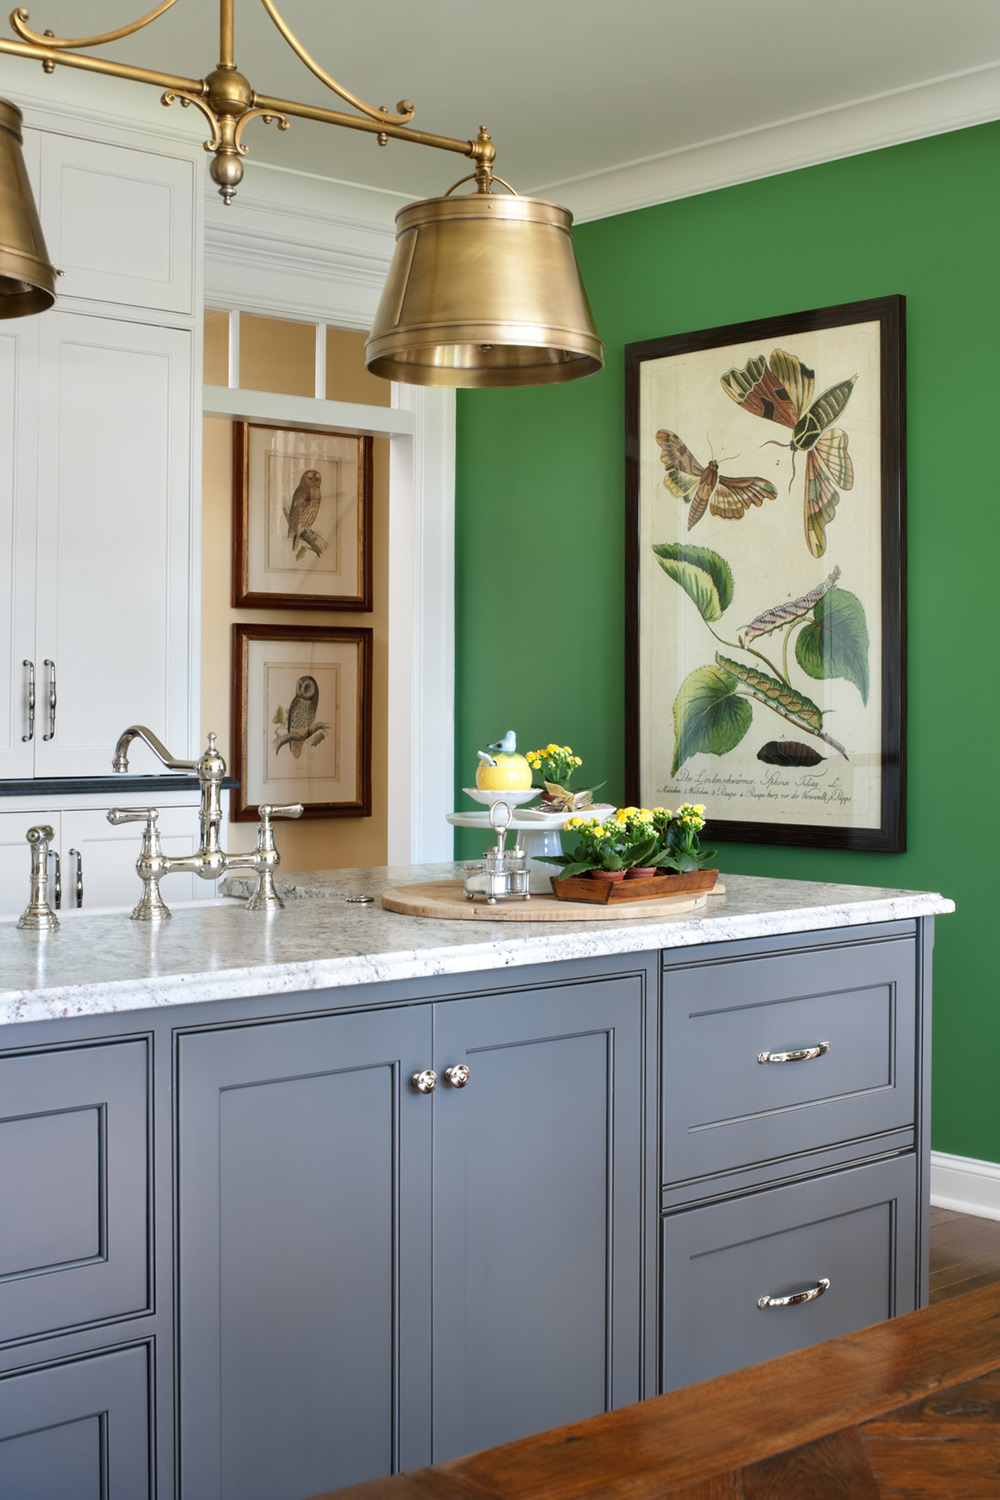 5 Spots To Dress Up In Your Kitchen Nell Hills